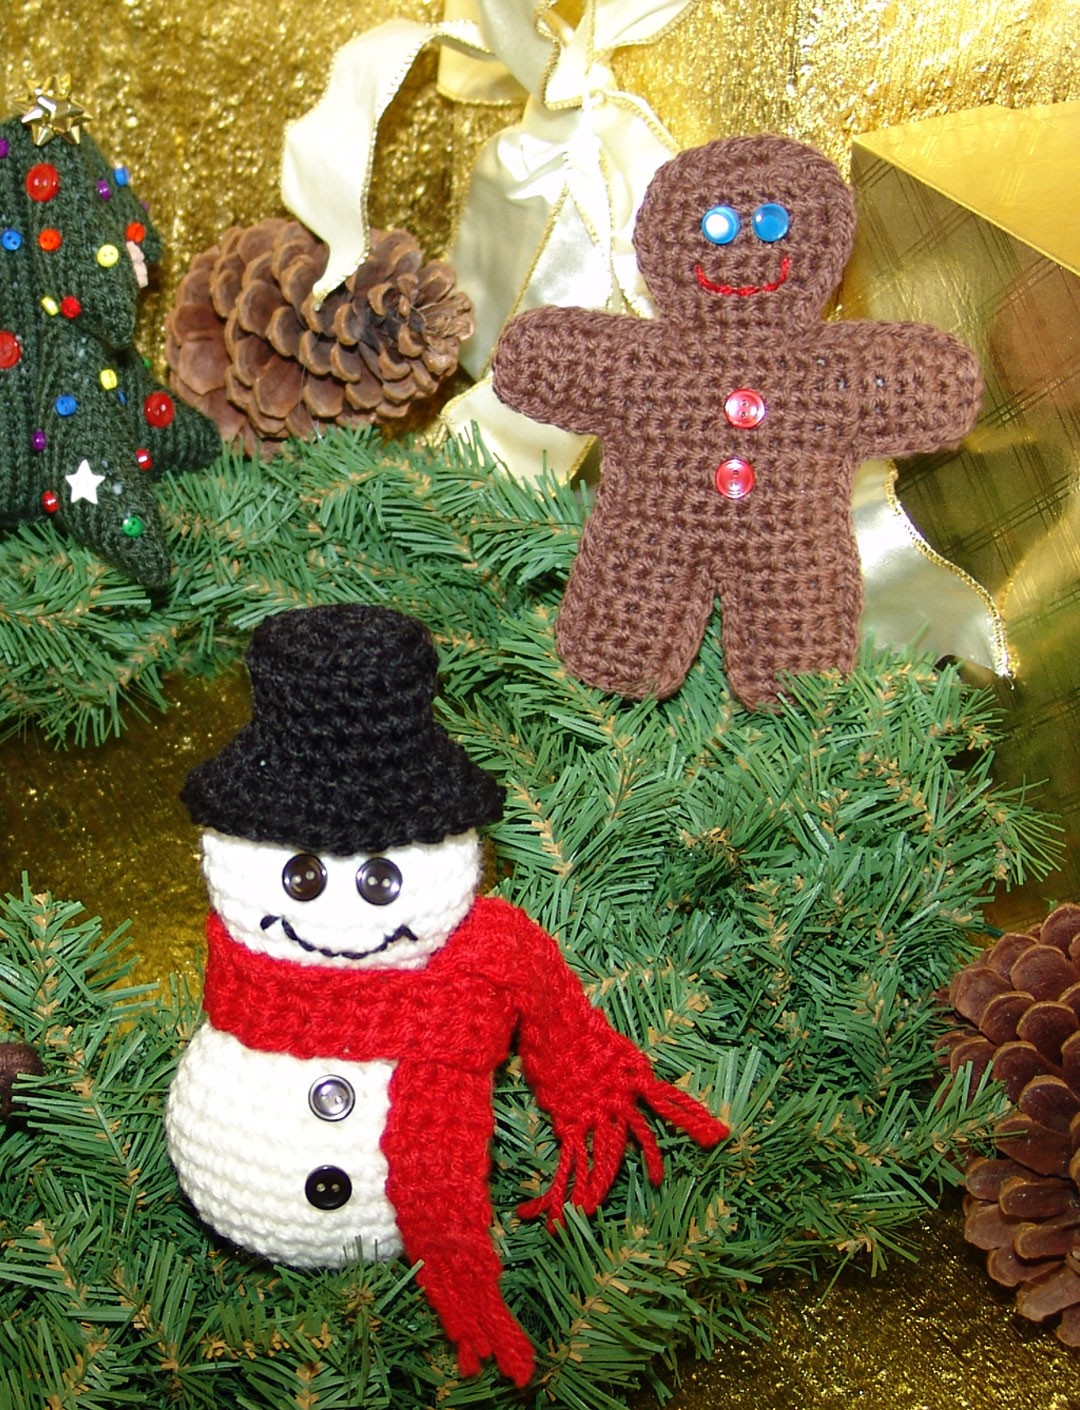 Knitted Xmas Tree Decorations Patterns : Christmas Ornaments - Patterns Yarnspirations